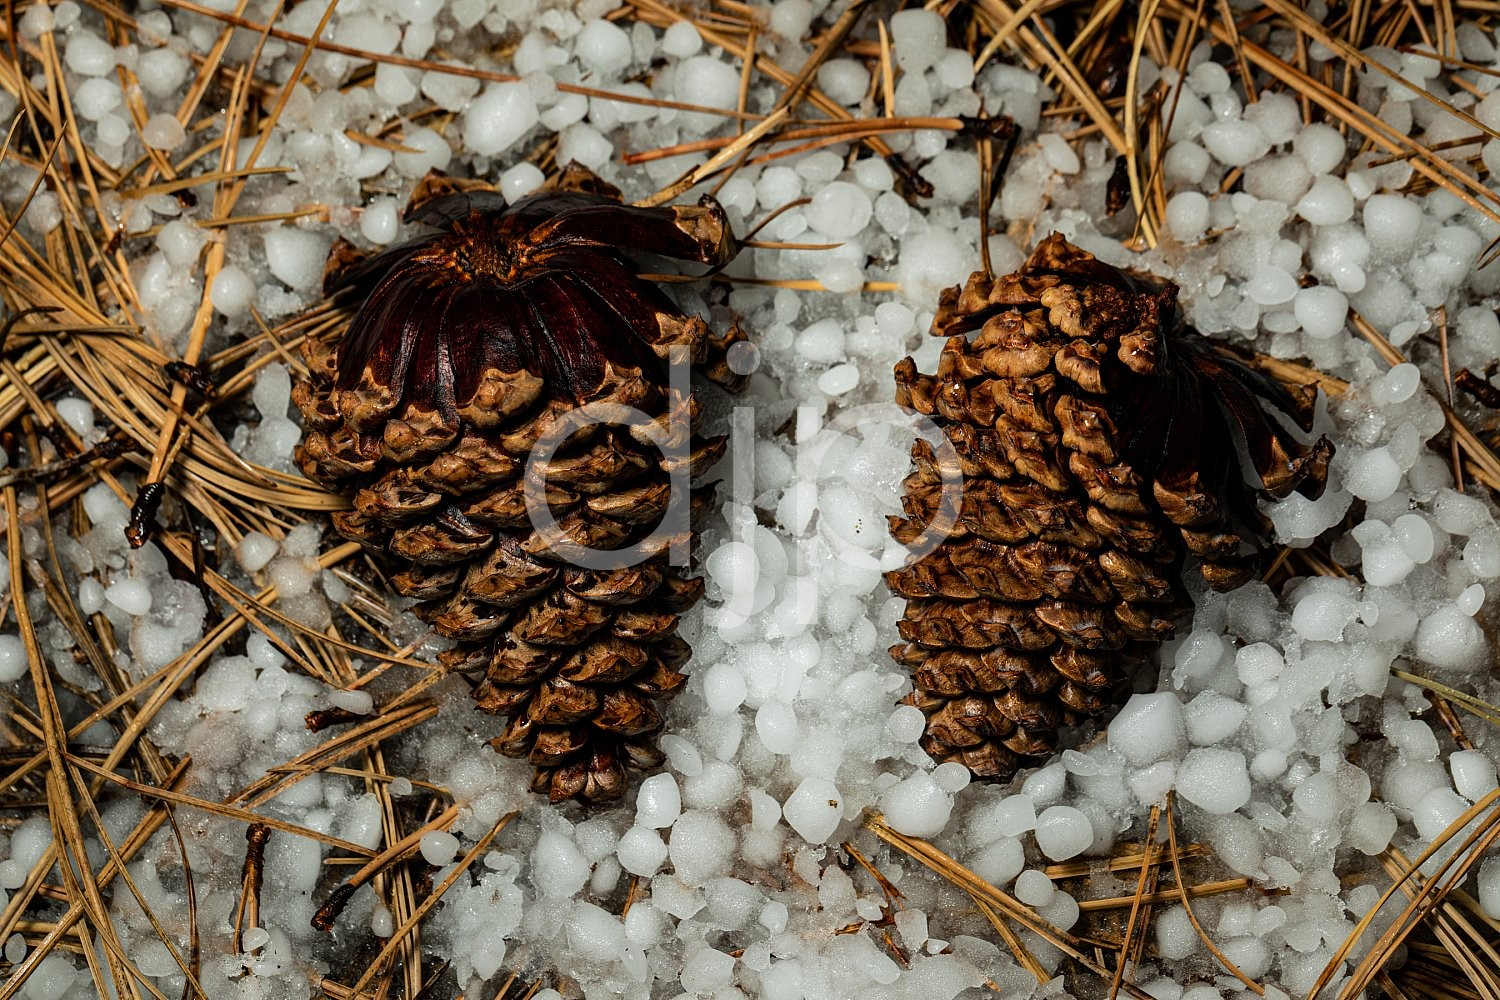 D Jones Photography, New Mexico, Santa Fe National Forest, djonesphoto, excursions with djp, hail, nm, pinecone, quarantine, white, brown